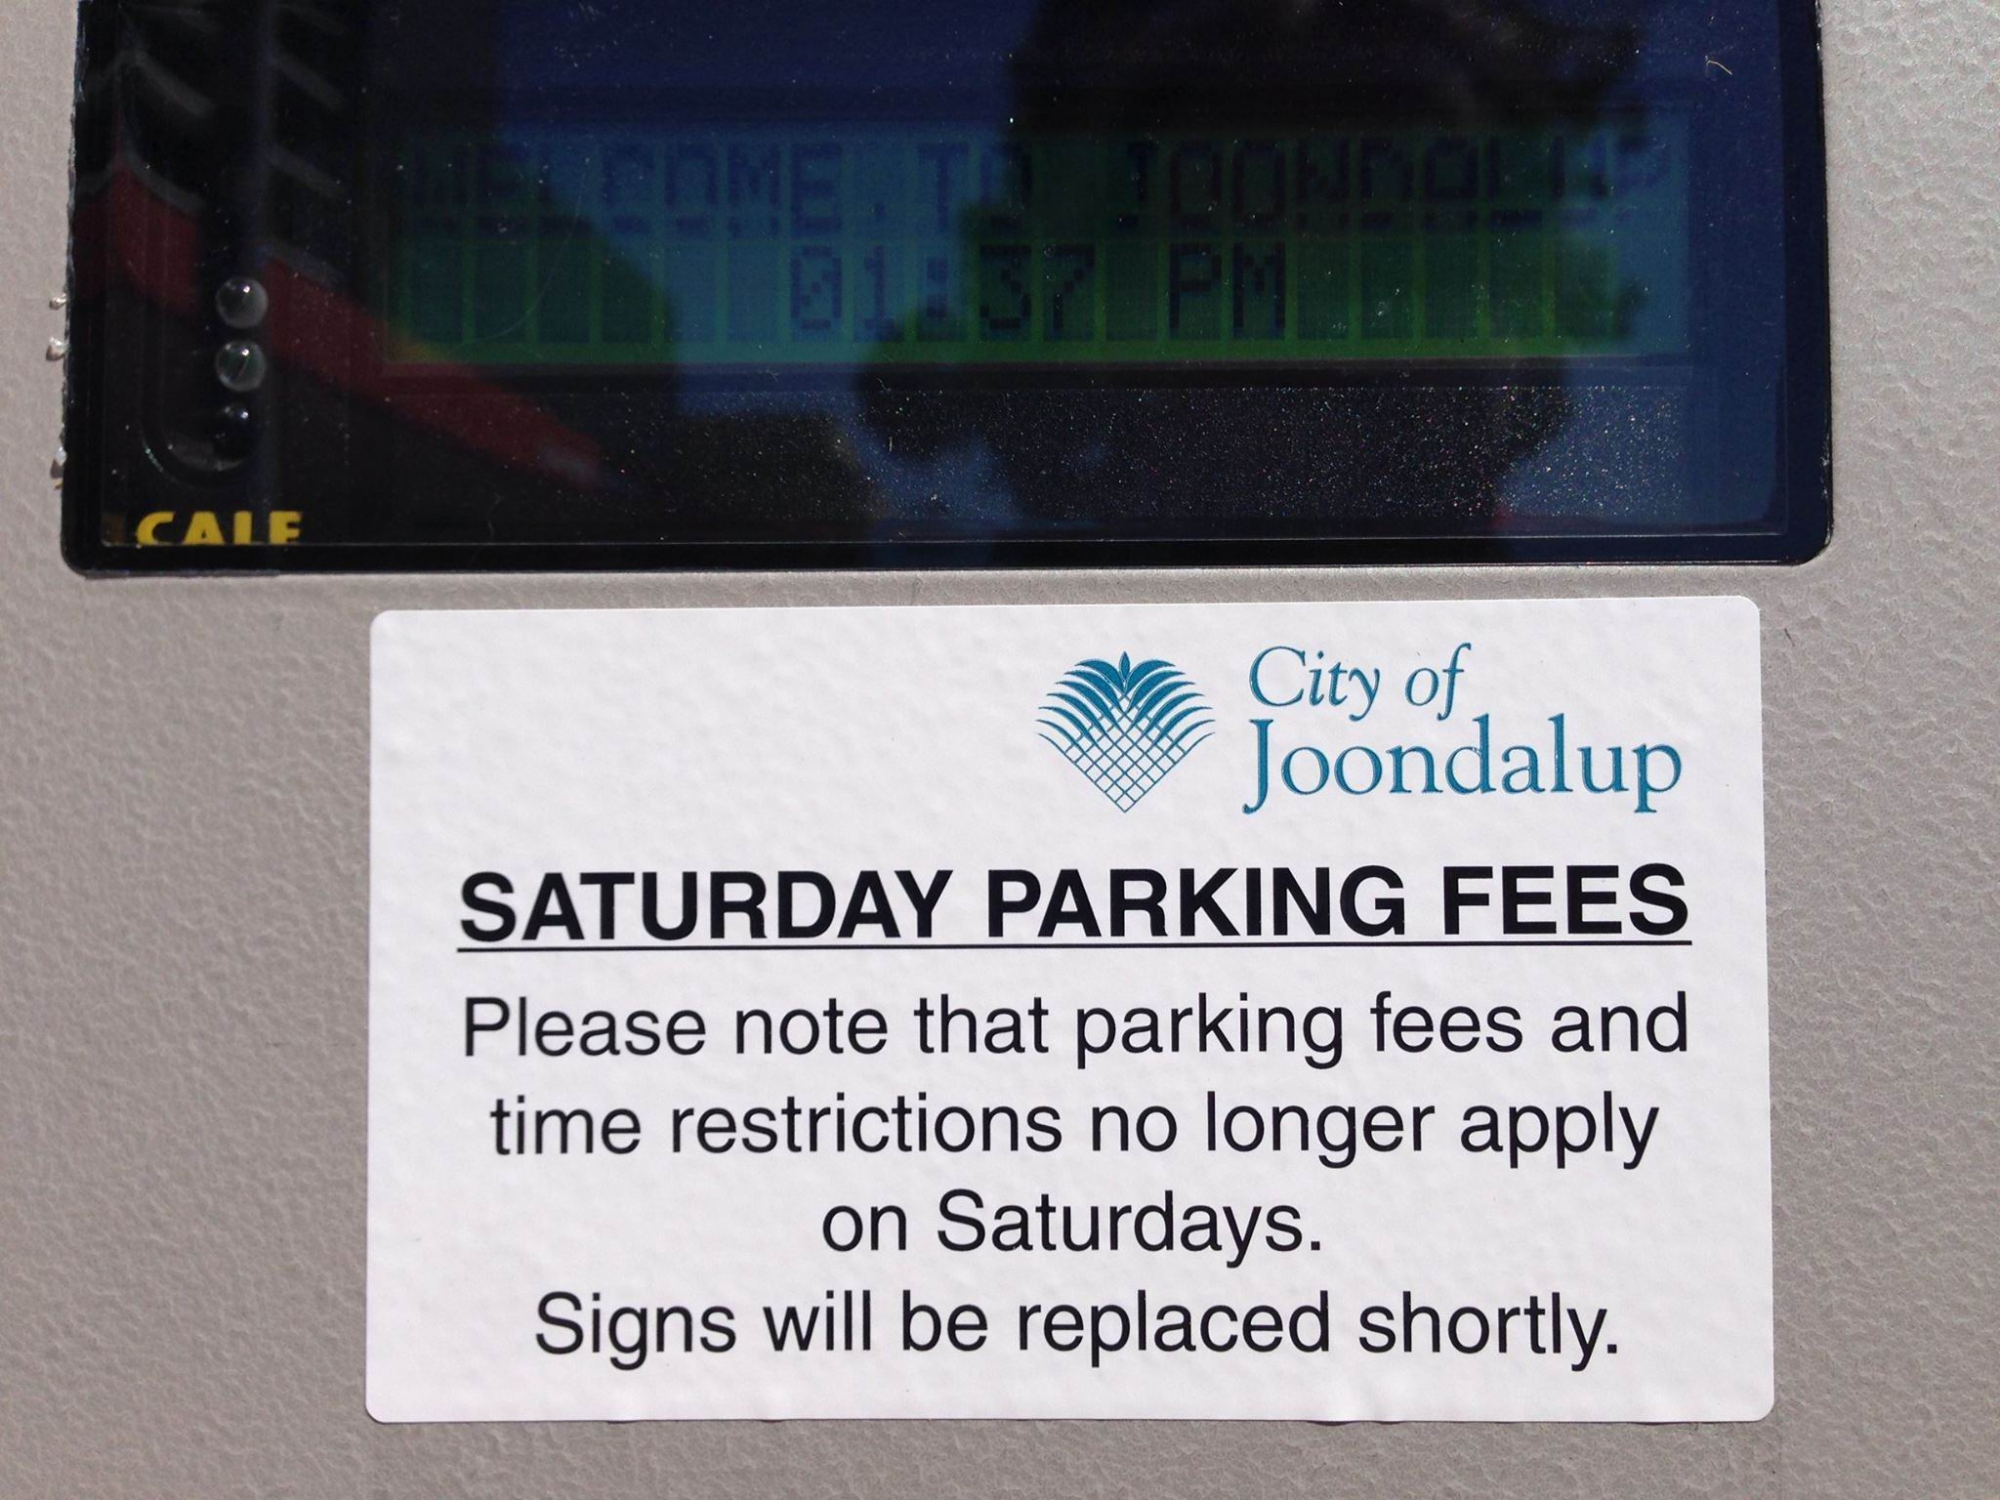 Fees are no more for Saturdays.